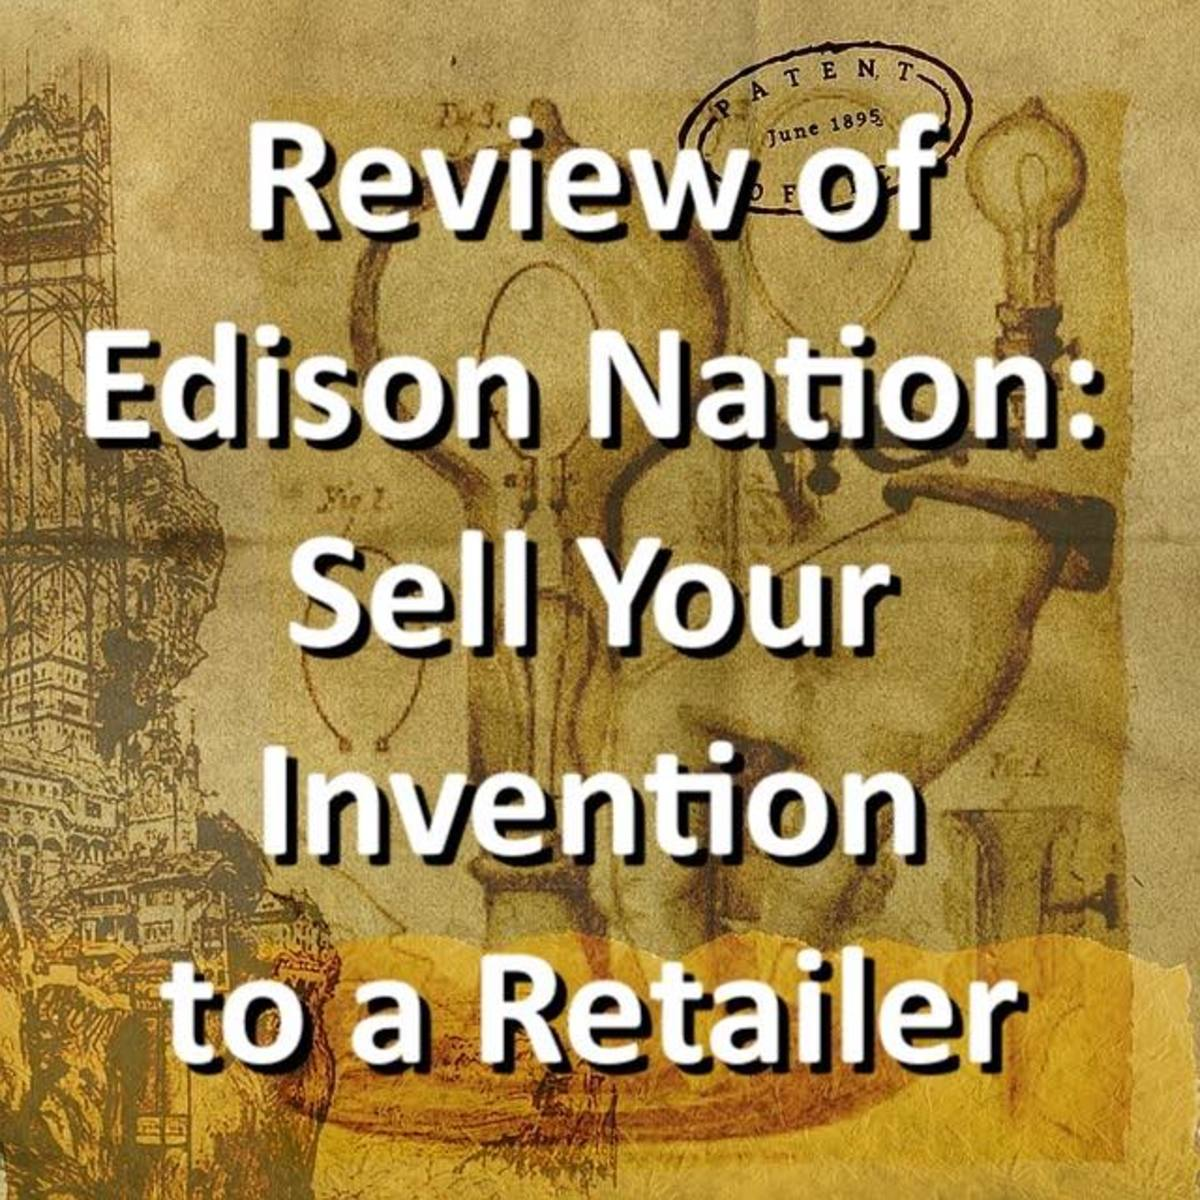 Review of Edison Nation: Sell Your Invention to a Retailer